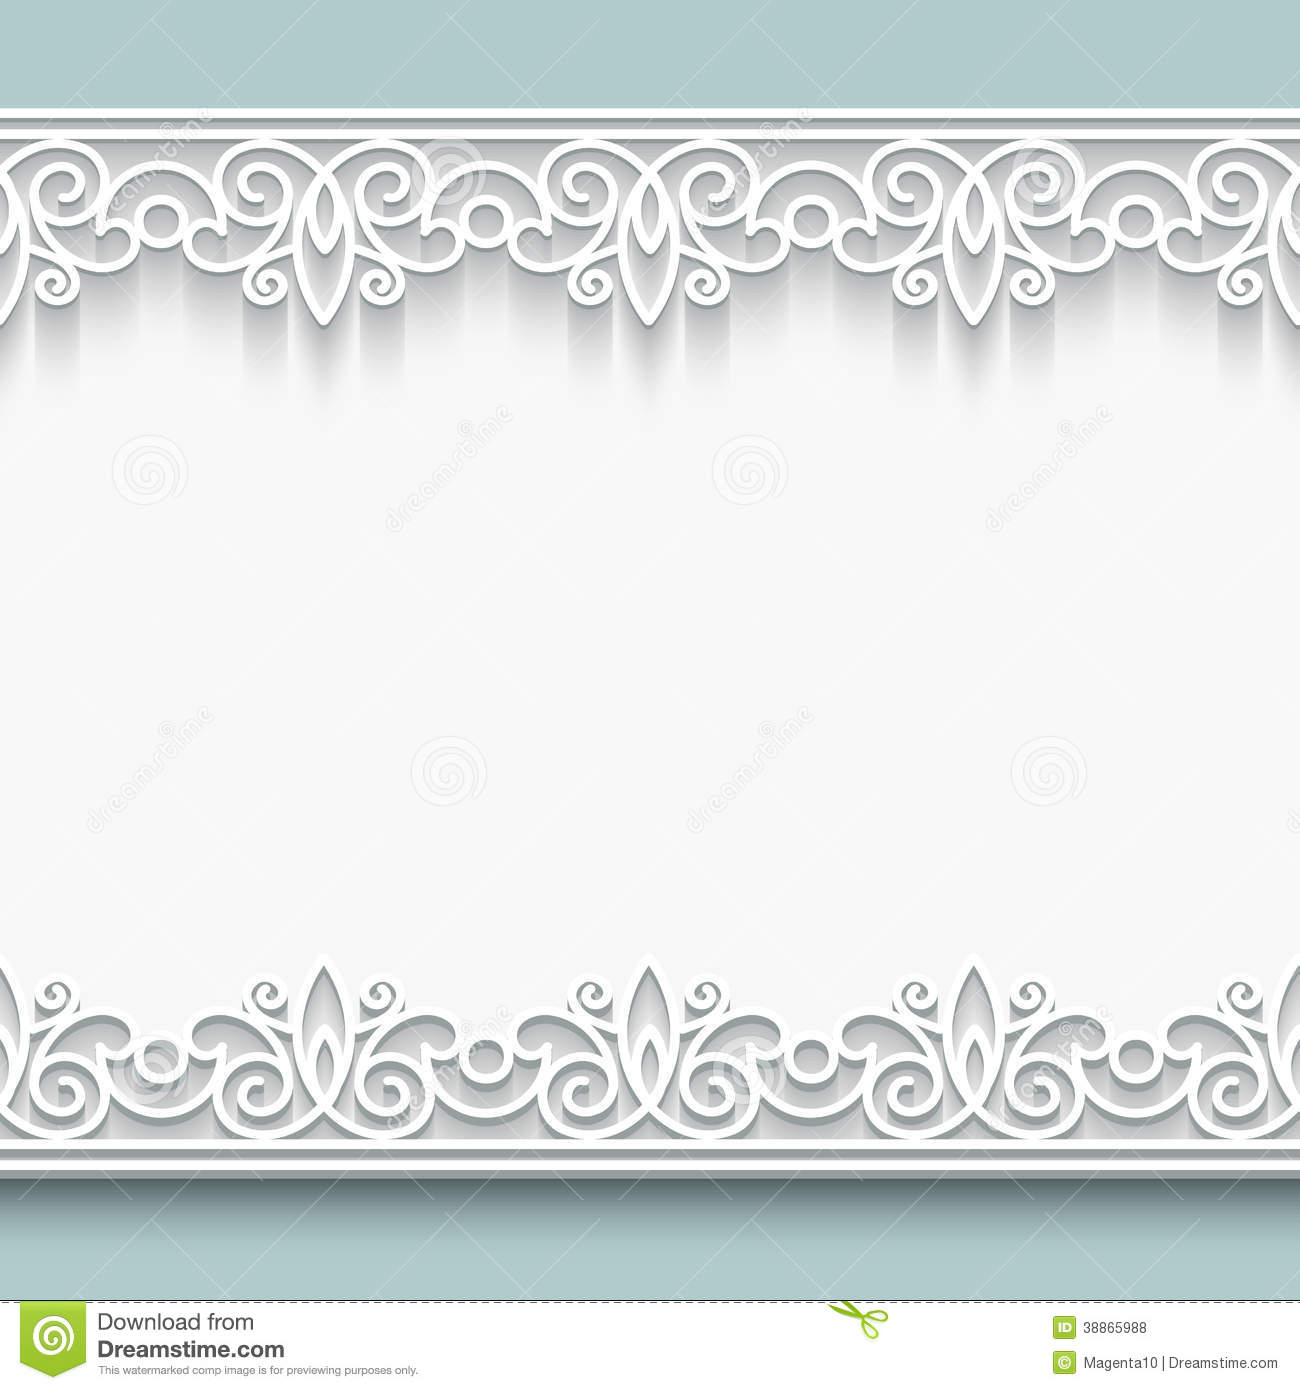 Paper lace background, ornamental frame with seamless borders.